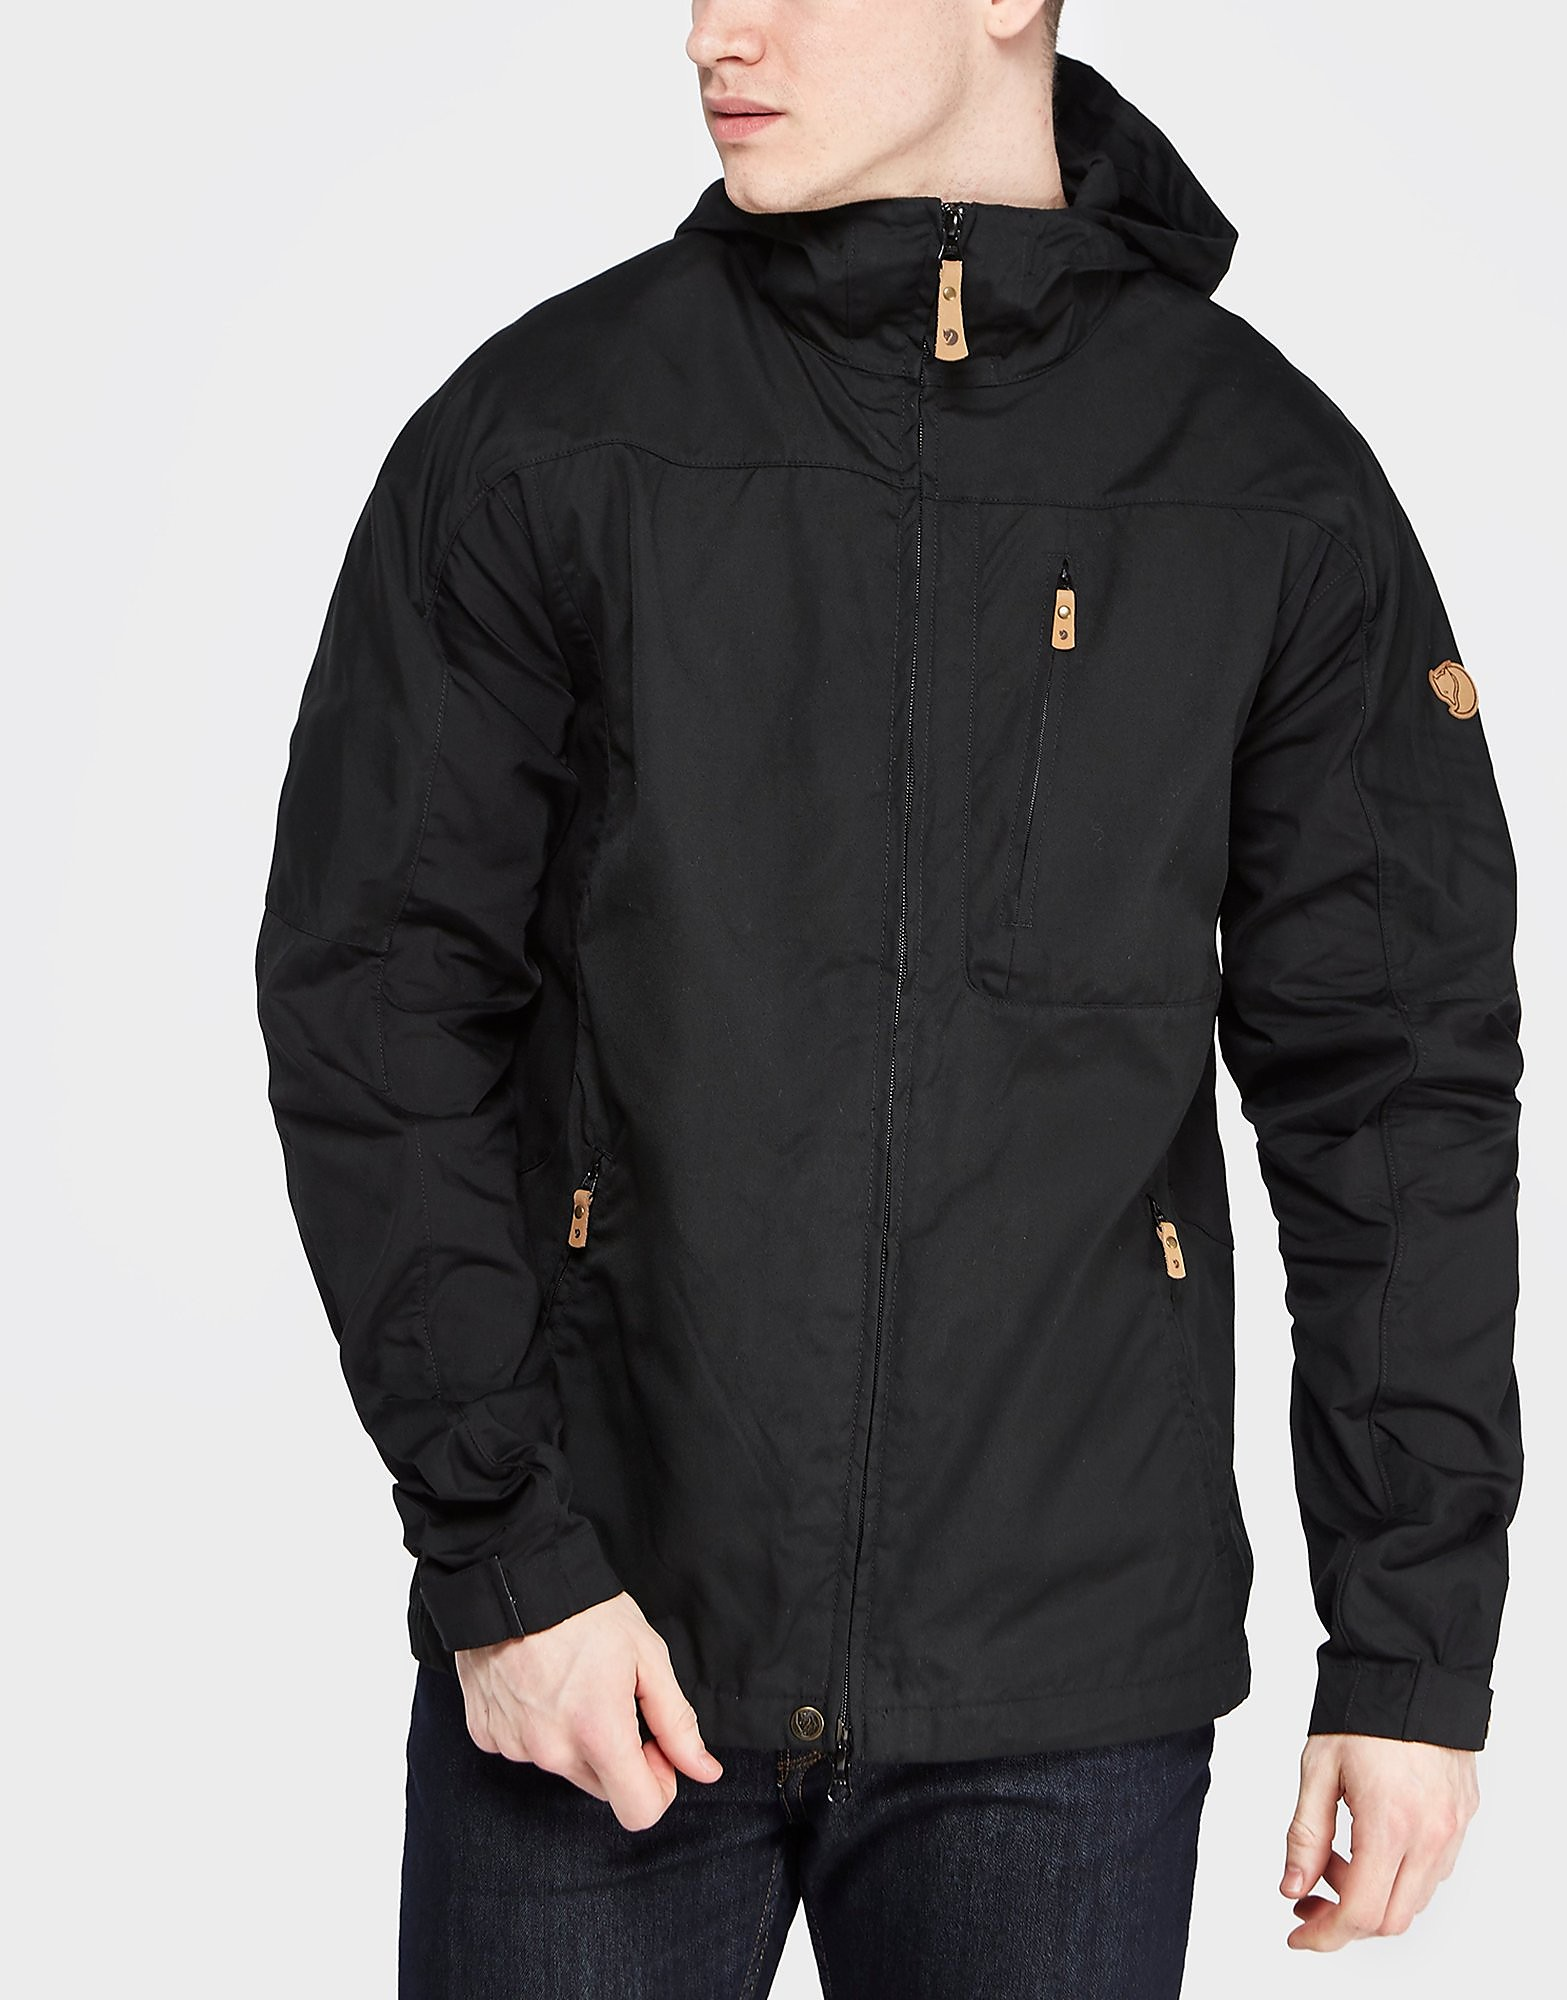 Fjallraven Sten Lightweight Jacket